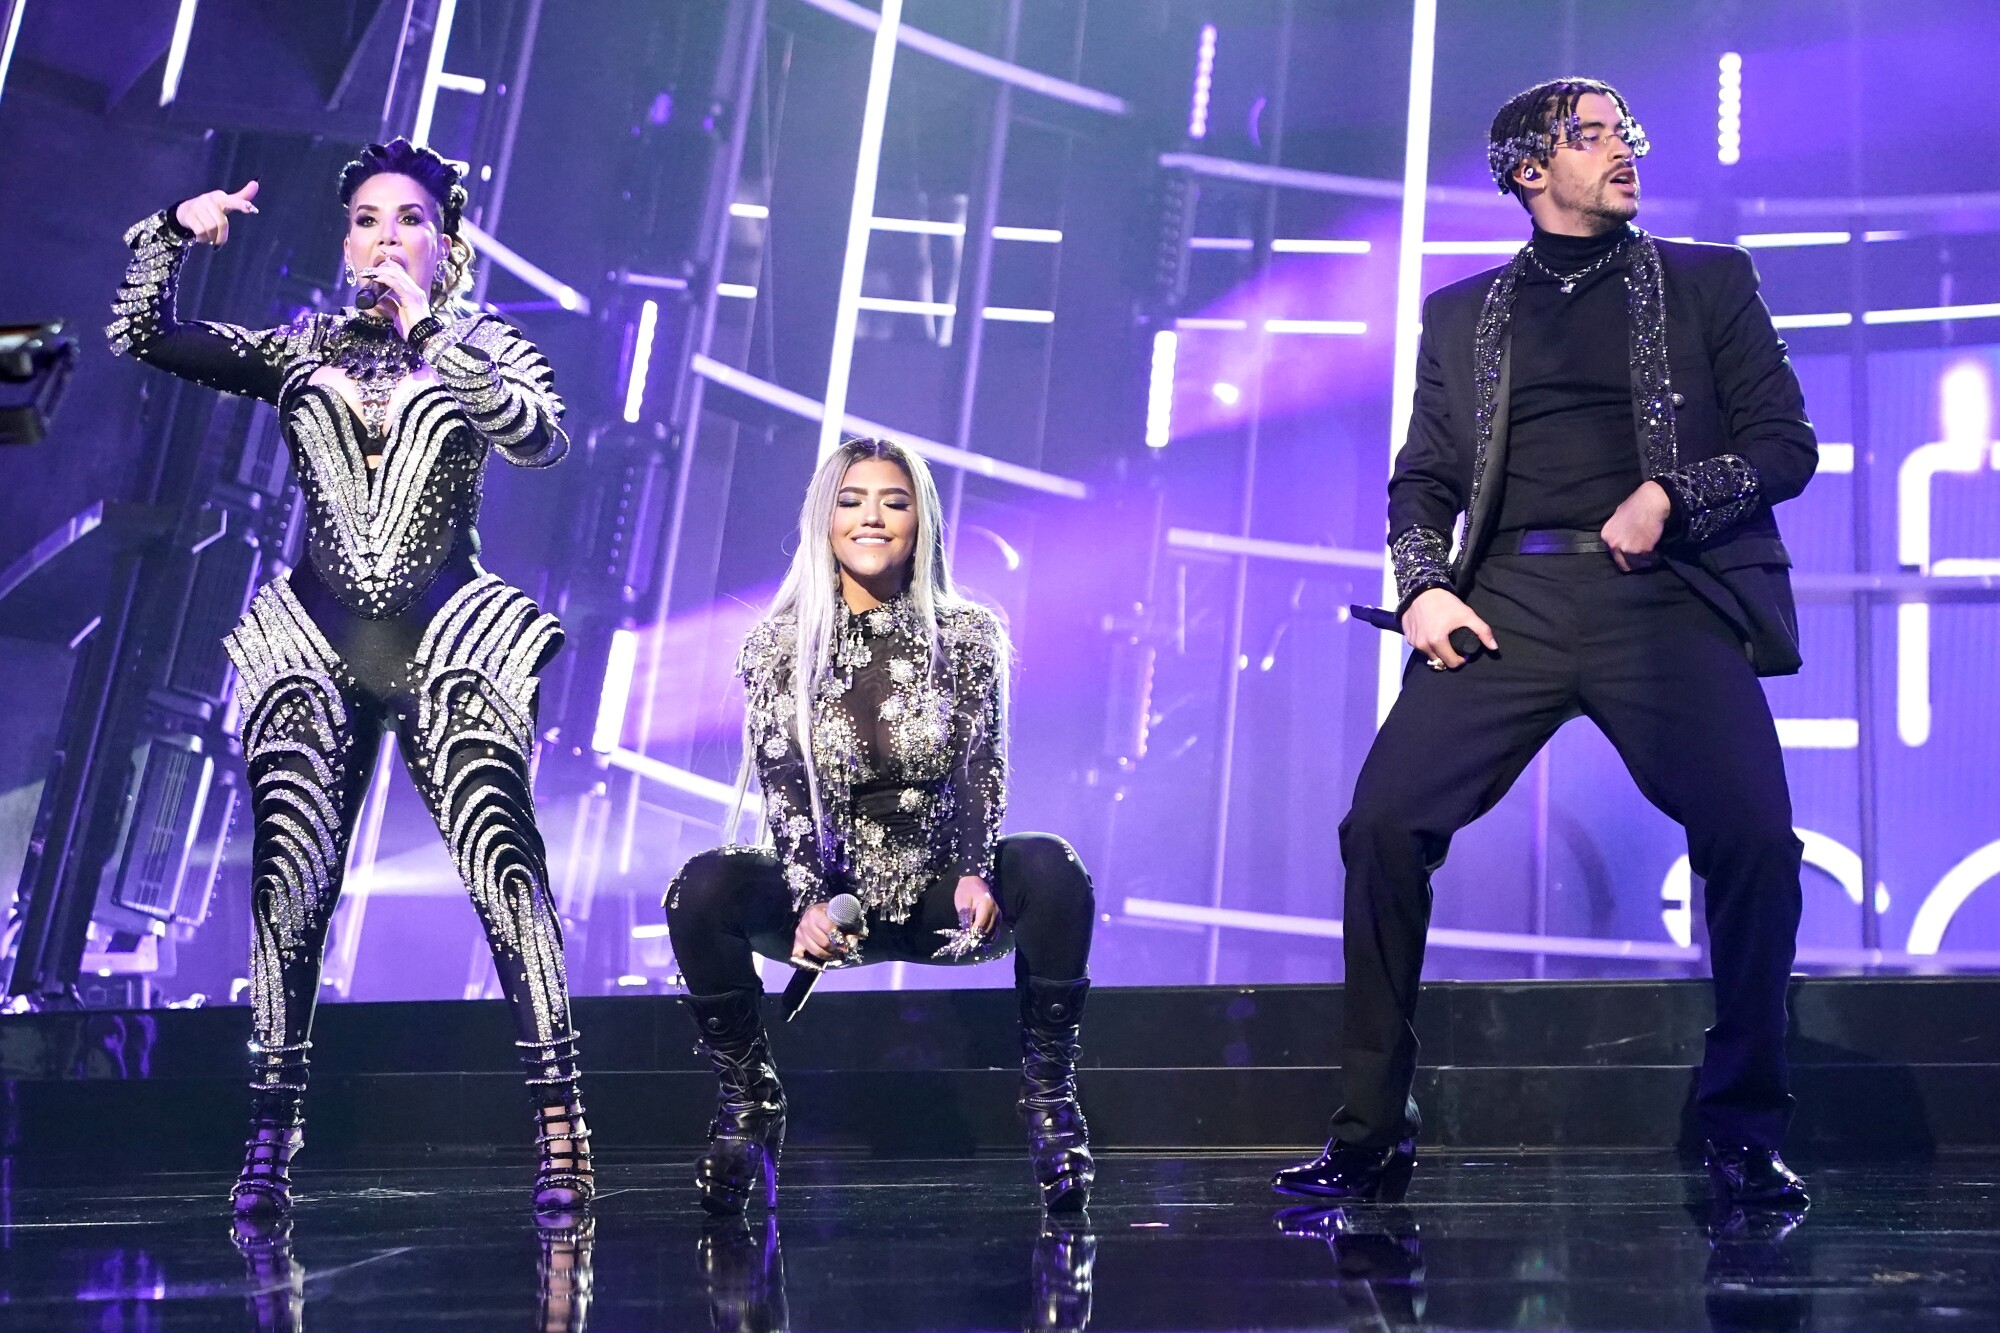 Ivy Queen, Nesi, Bad Bunny perform on a brightly lighted stage.